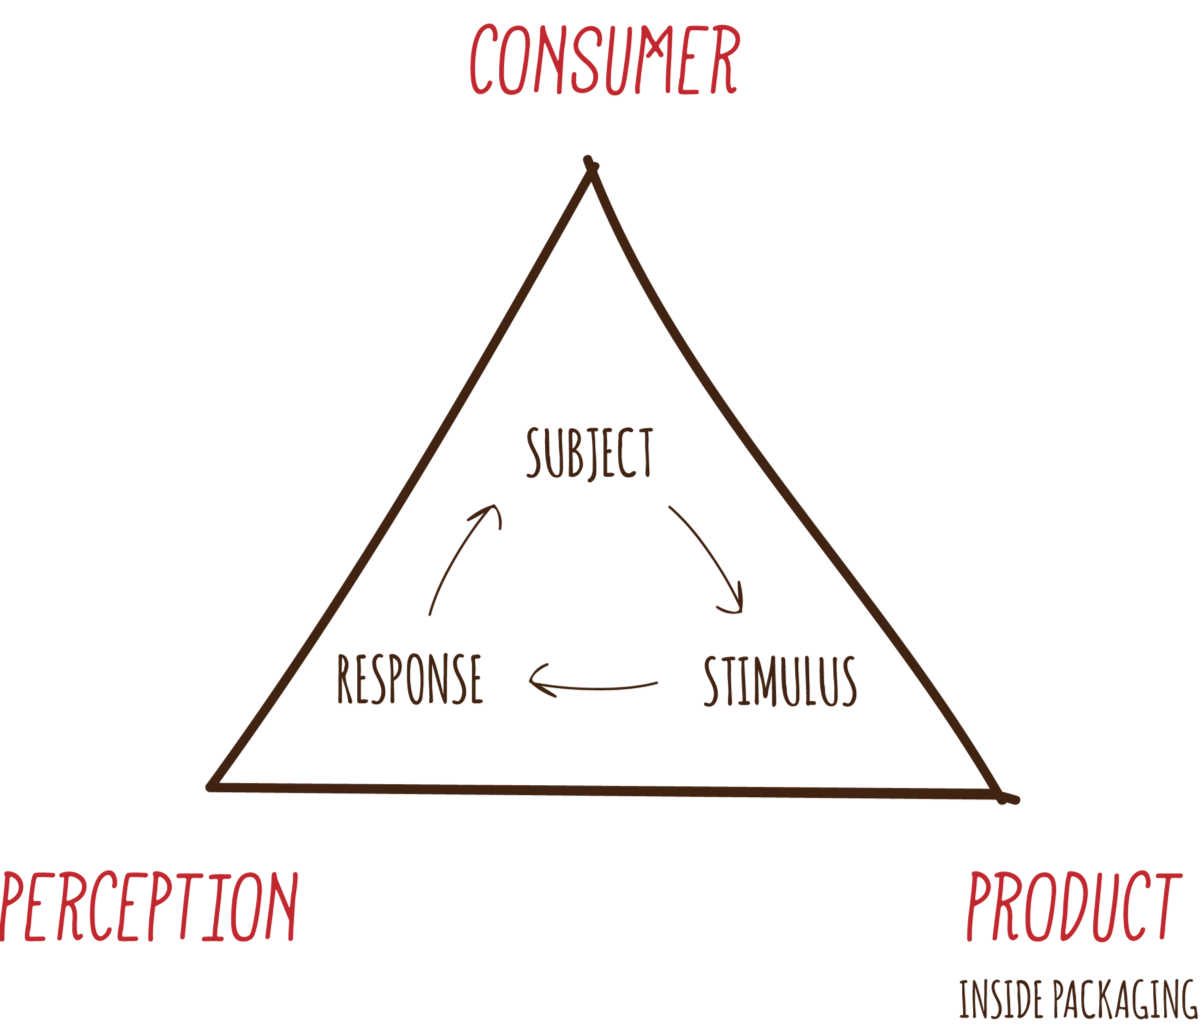 theoretical framework about stimulus response theory for consumer behavior Attraction-selection-attrition framework competing values framework contingency theories enactment theory framing in organizations groupthink marketing and consumer behavior agenda-setting theory attraction-selection-attrition framework attribution theory cognitive dissonance theory.